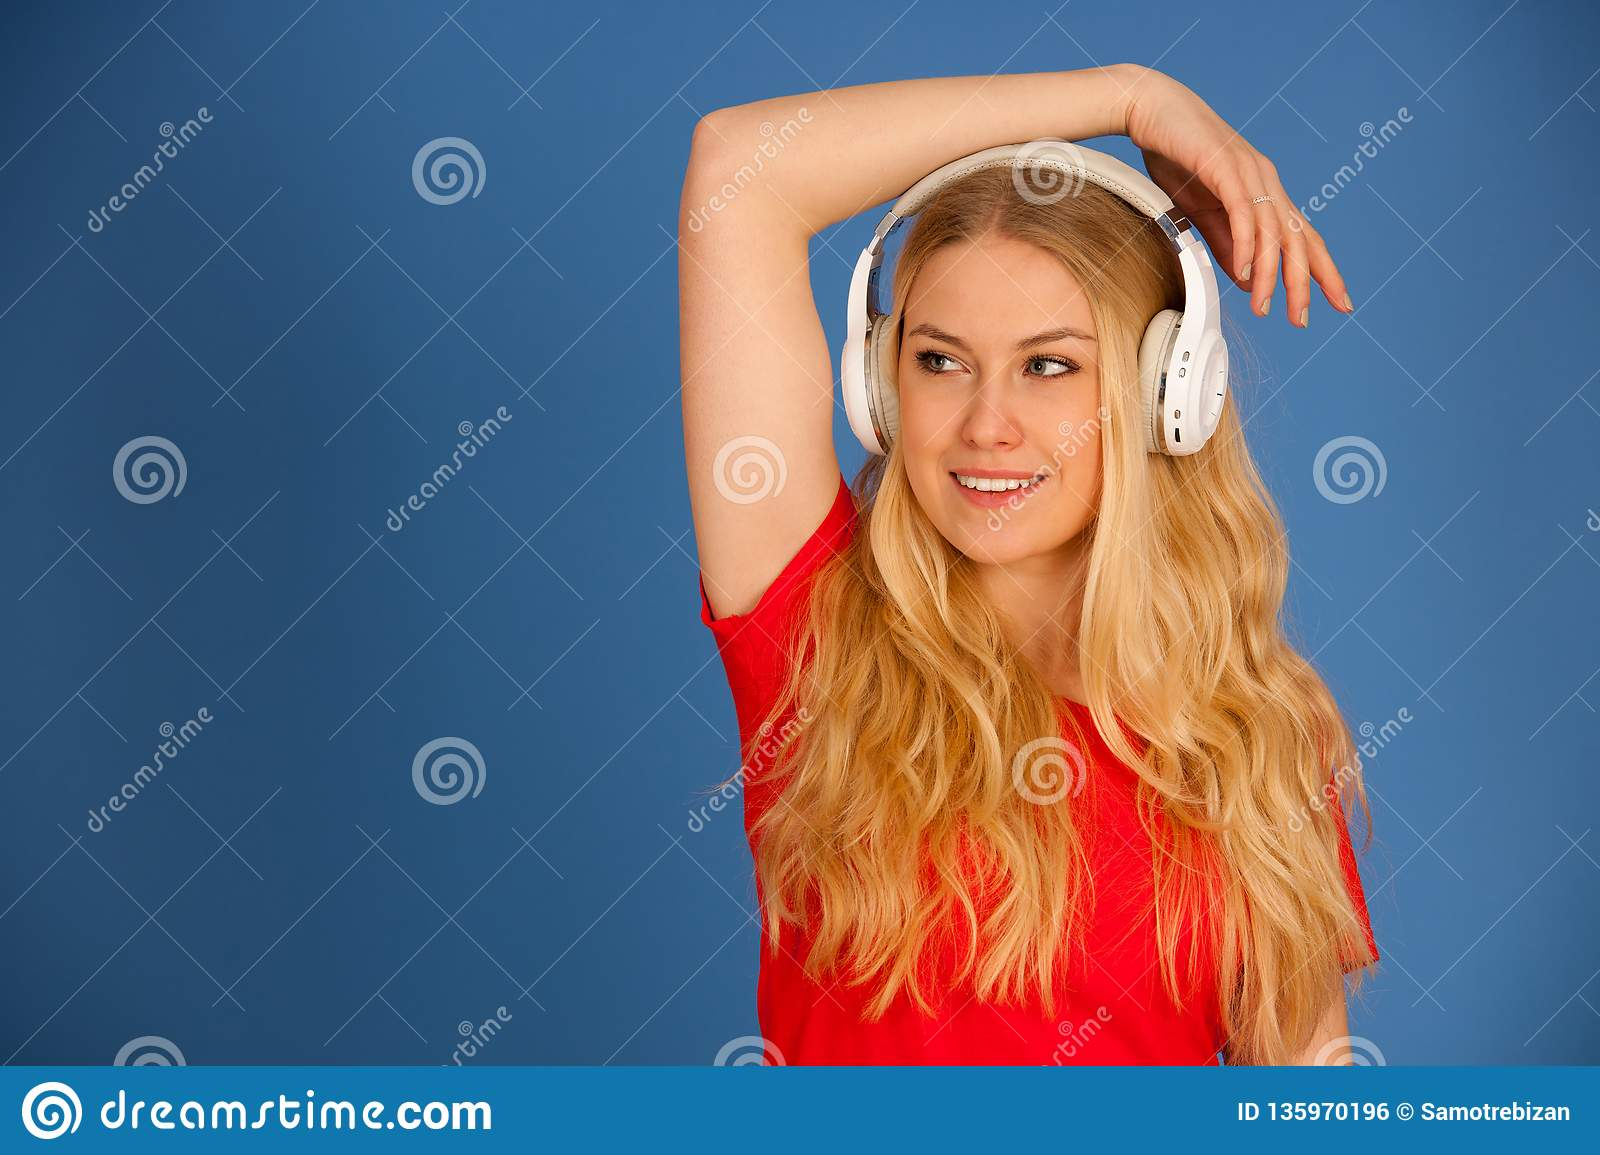 Young blonde woman with headphones listens to the music over blue background